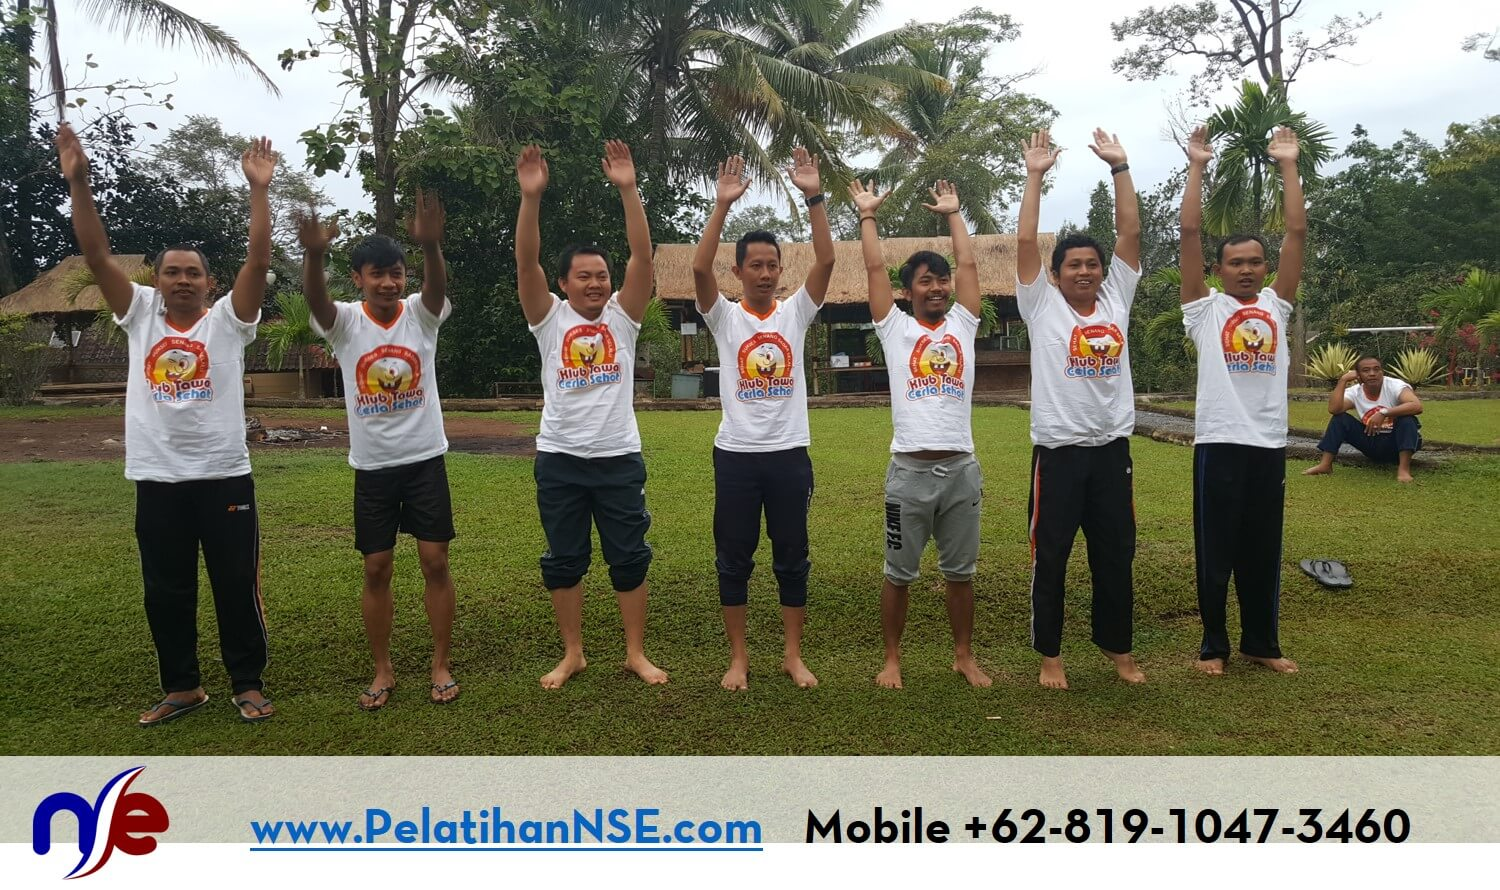 NSE Basic Self Empowerment KAI 29-30 September 2016 - Games untuk Fokus